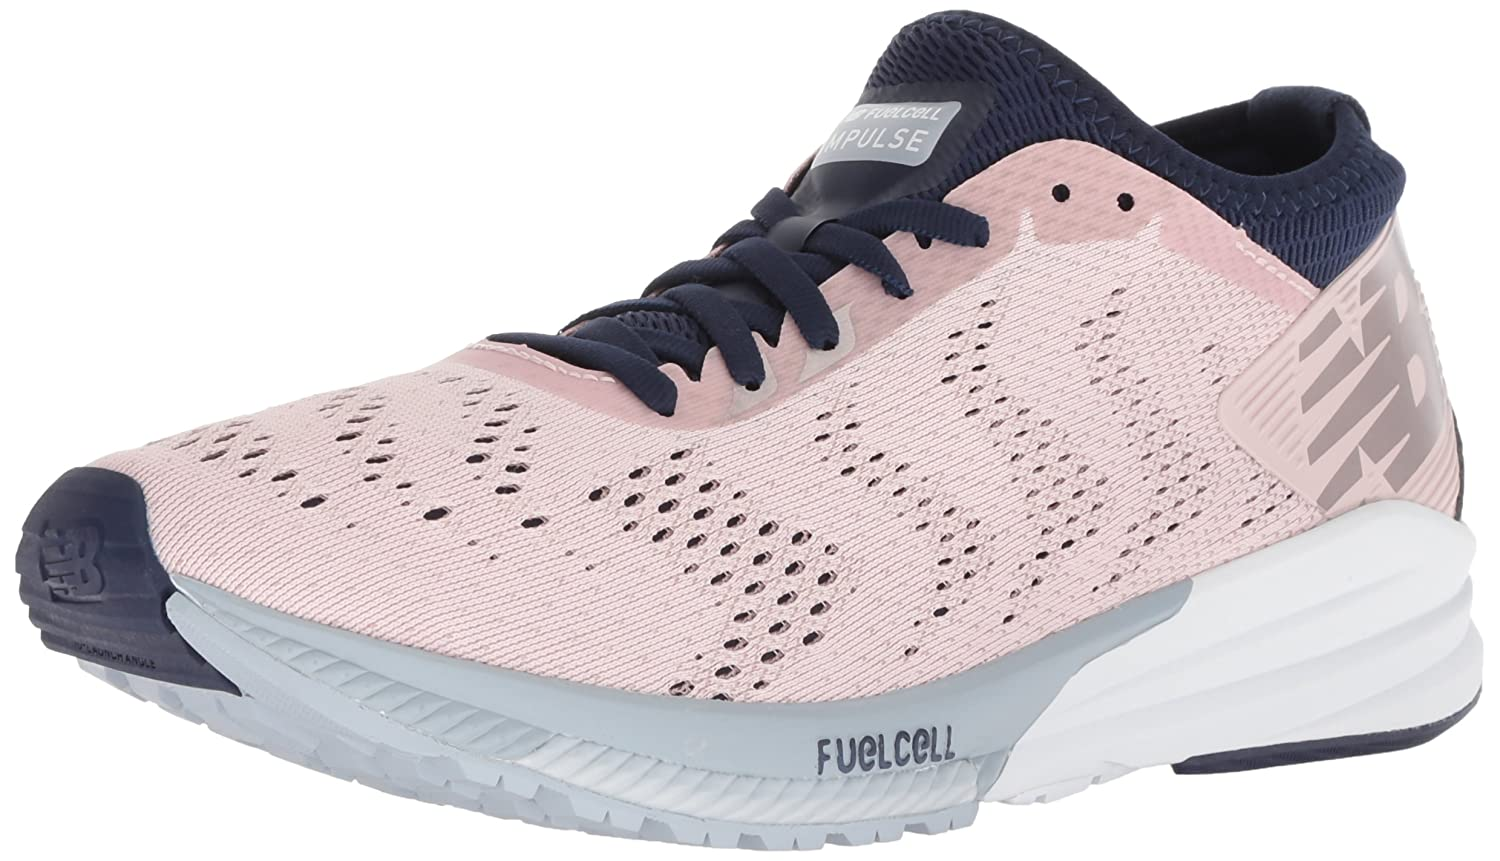 New Balance Women's Impulse V1 FuelCell Running Shoe B075R7BYTG 10 D US|Light Pink